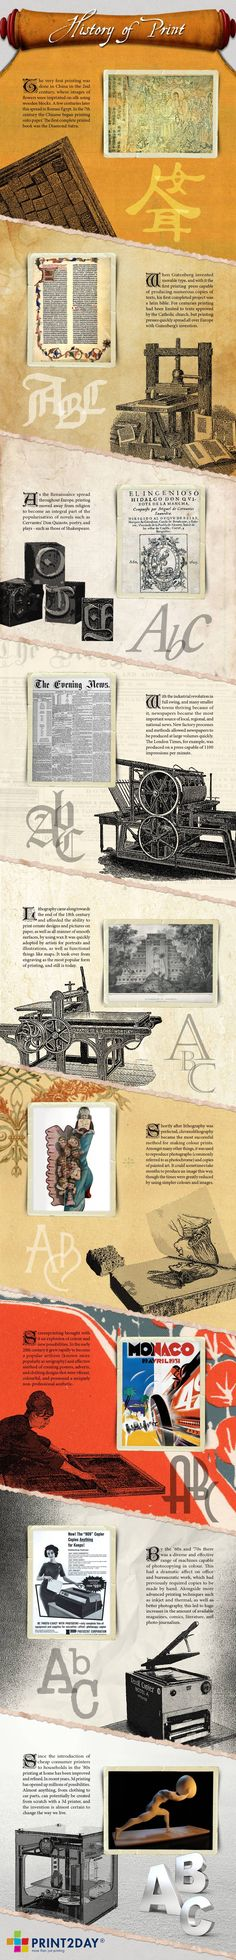 History of Print   #Infographic #Printing #Technology